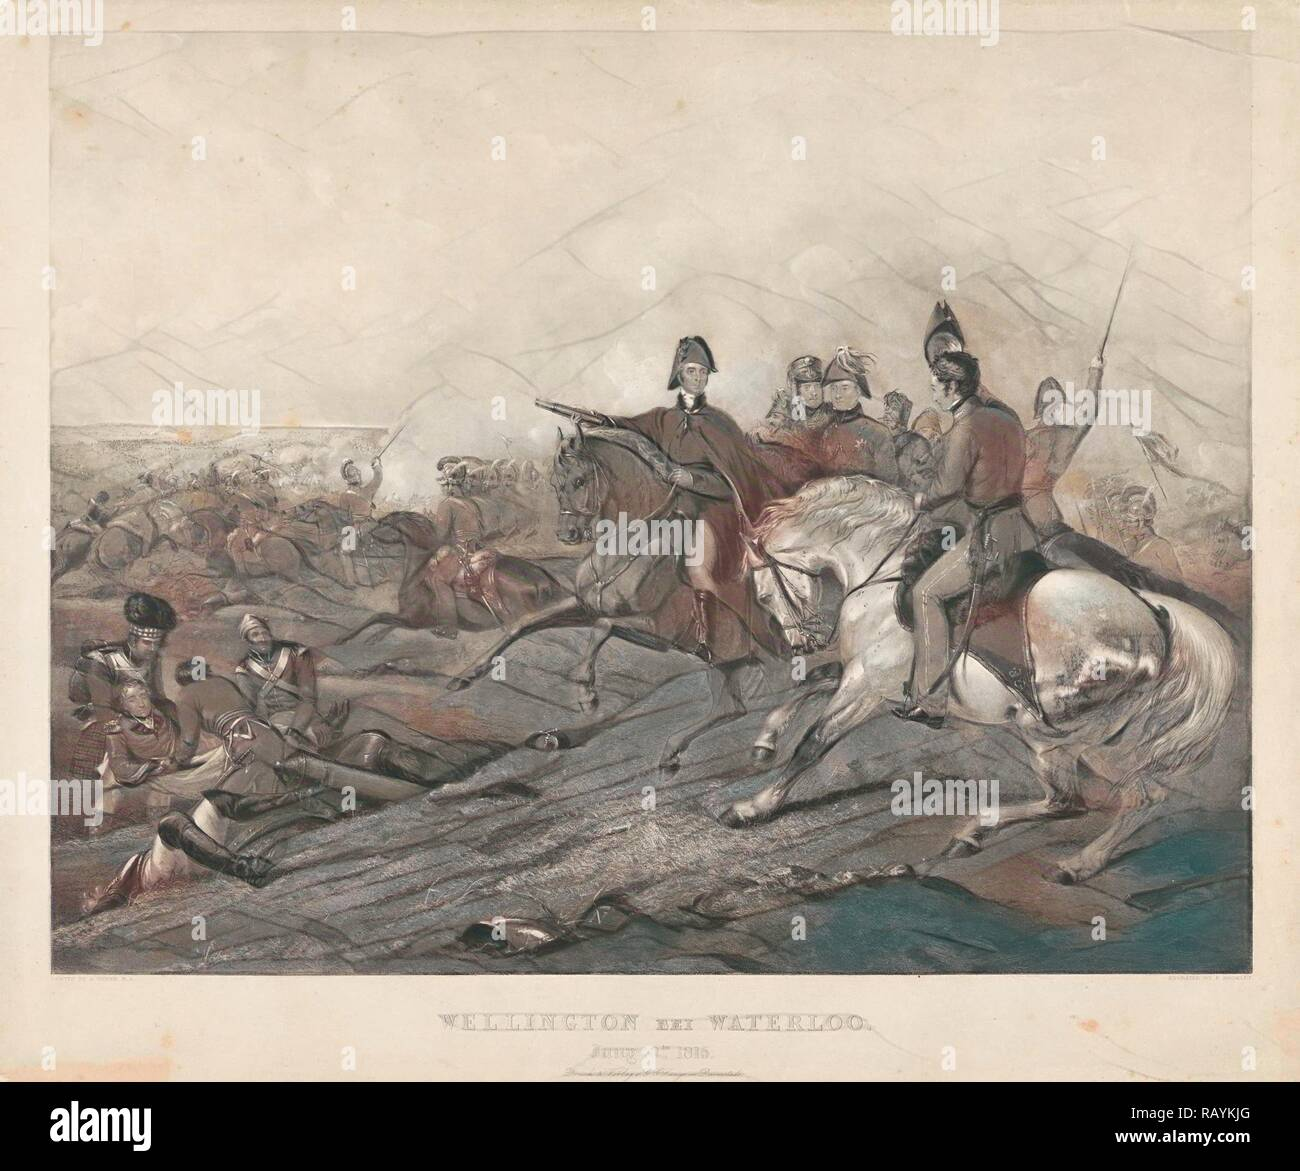 Wellington at the Battle of Waterloo, 1815, Frederick Bromley, G.G. Lange, 1837. Reimagined by Gibon. Classic art reimagined - Stock Image